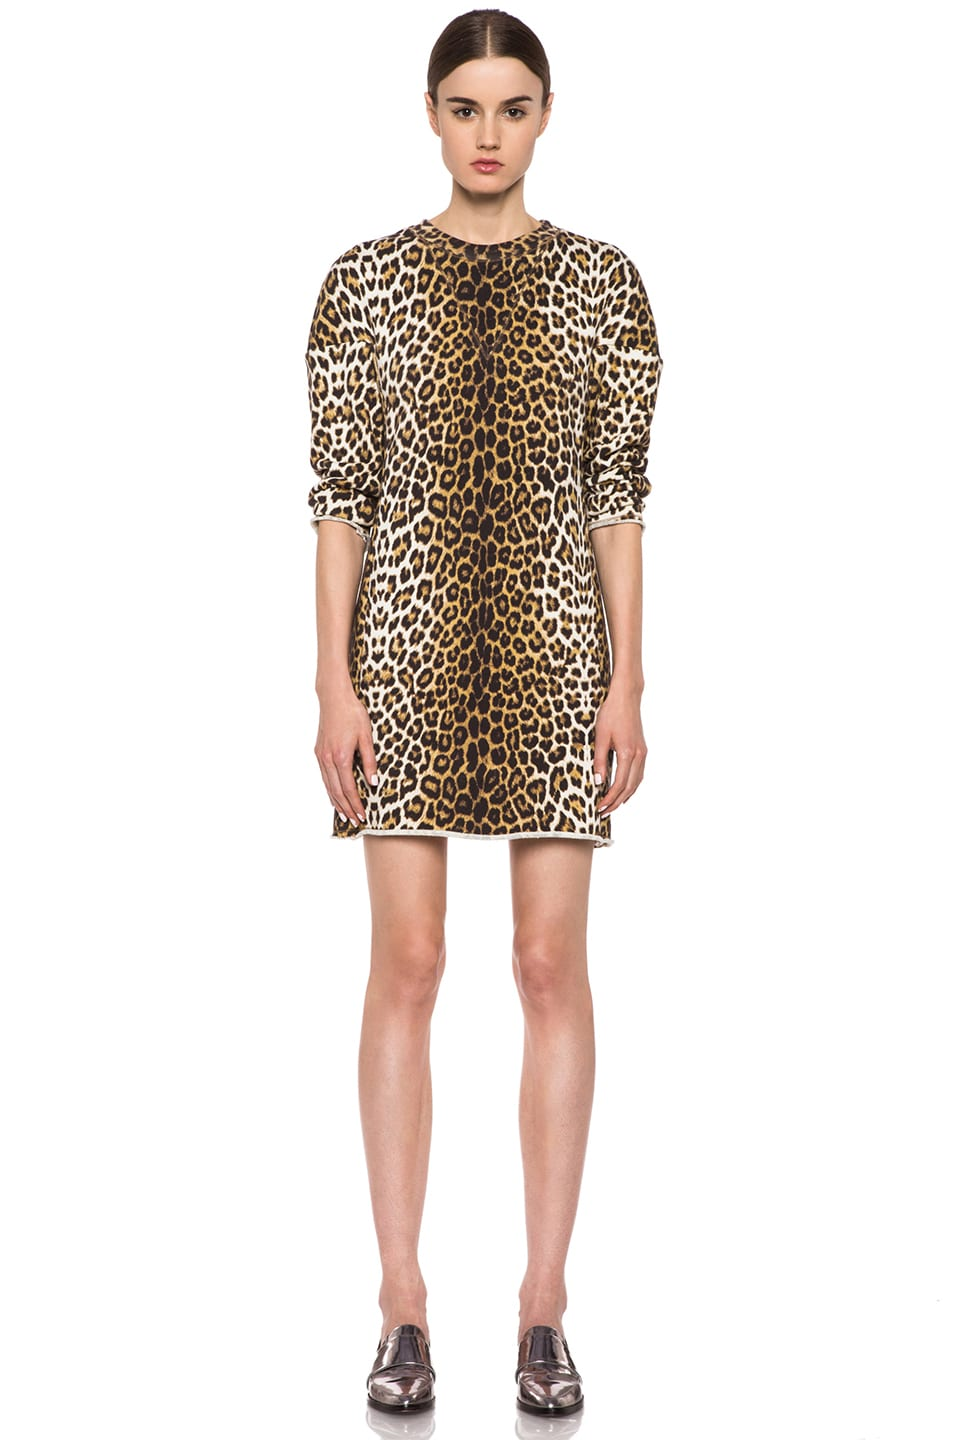 Image 1 of 3.1 phillip lim Rounded Shoulders Sculpted Cotton Dress in Leopard